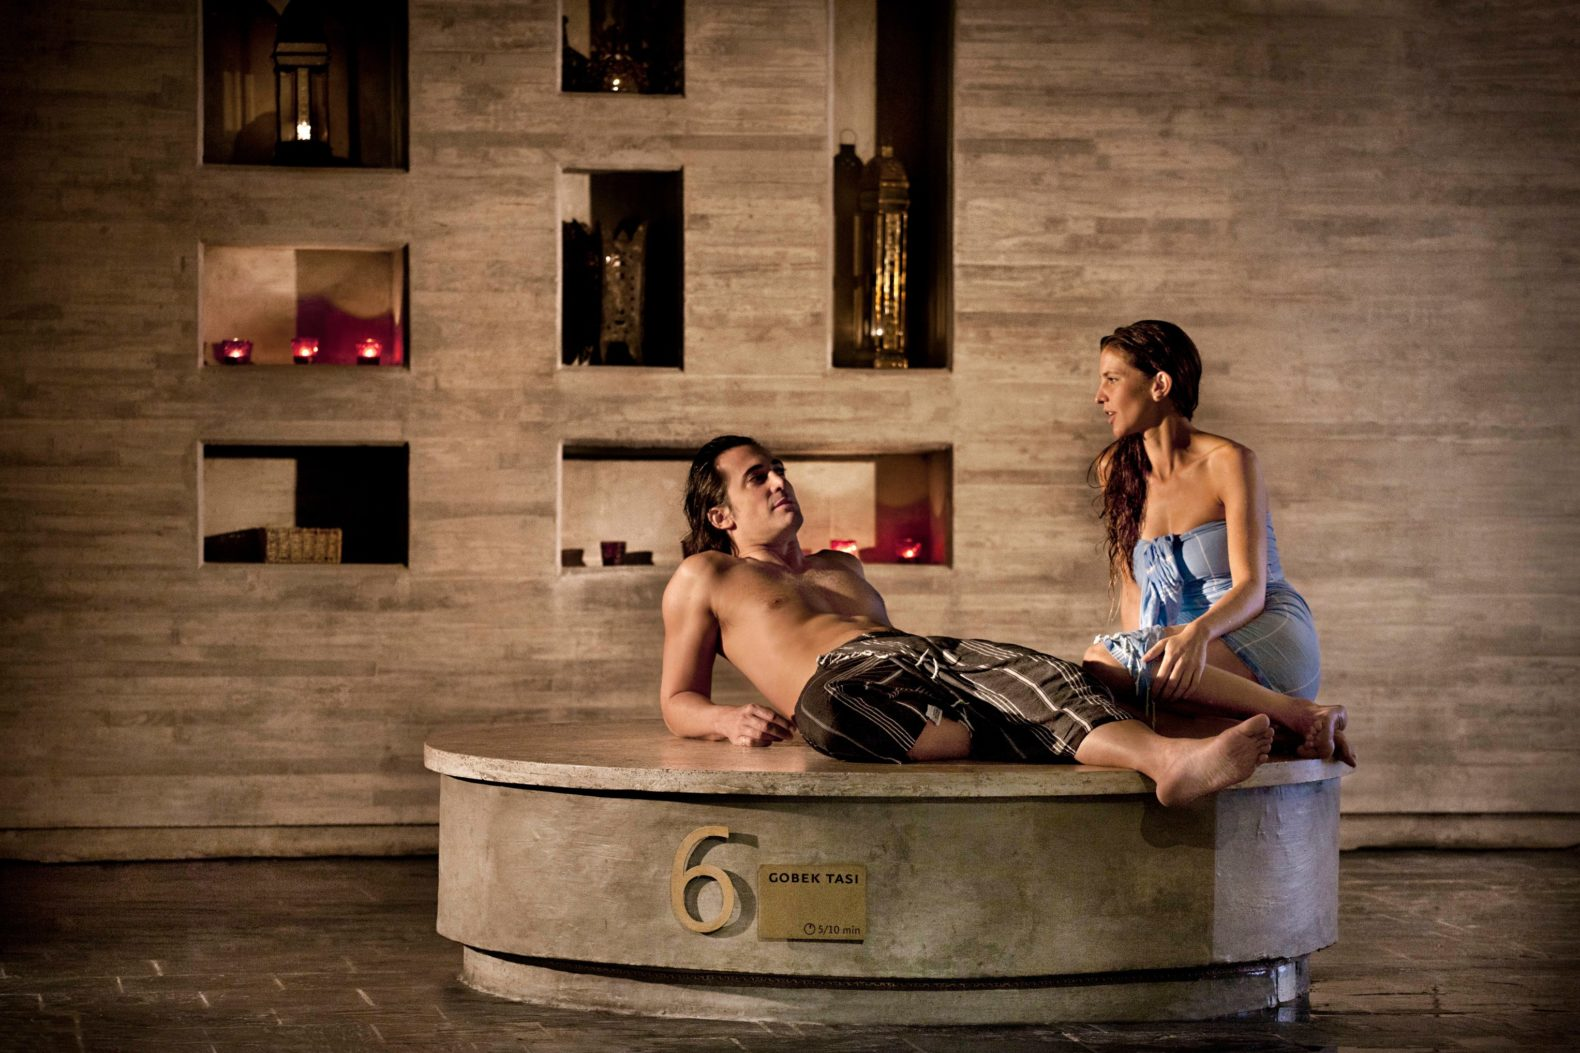 hot-stone-quality-time-couple-entre-cielos-hamam-spa-argentina